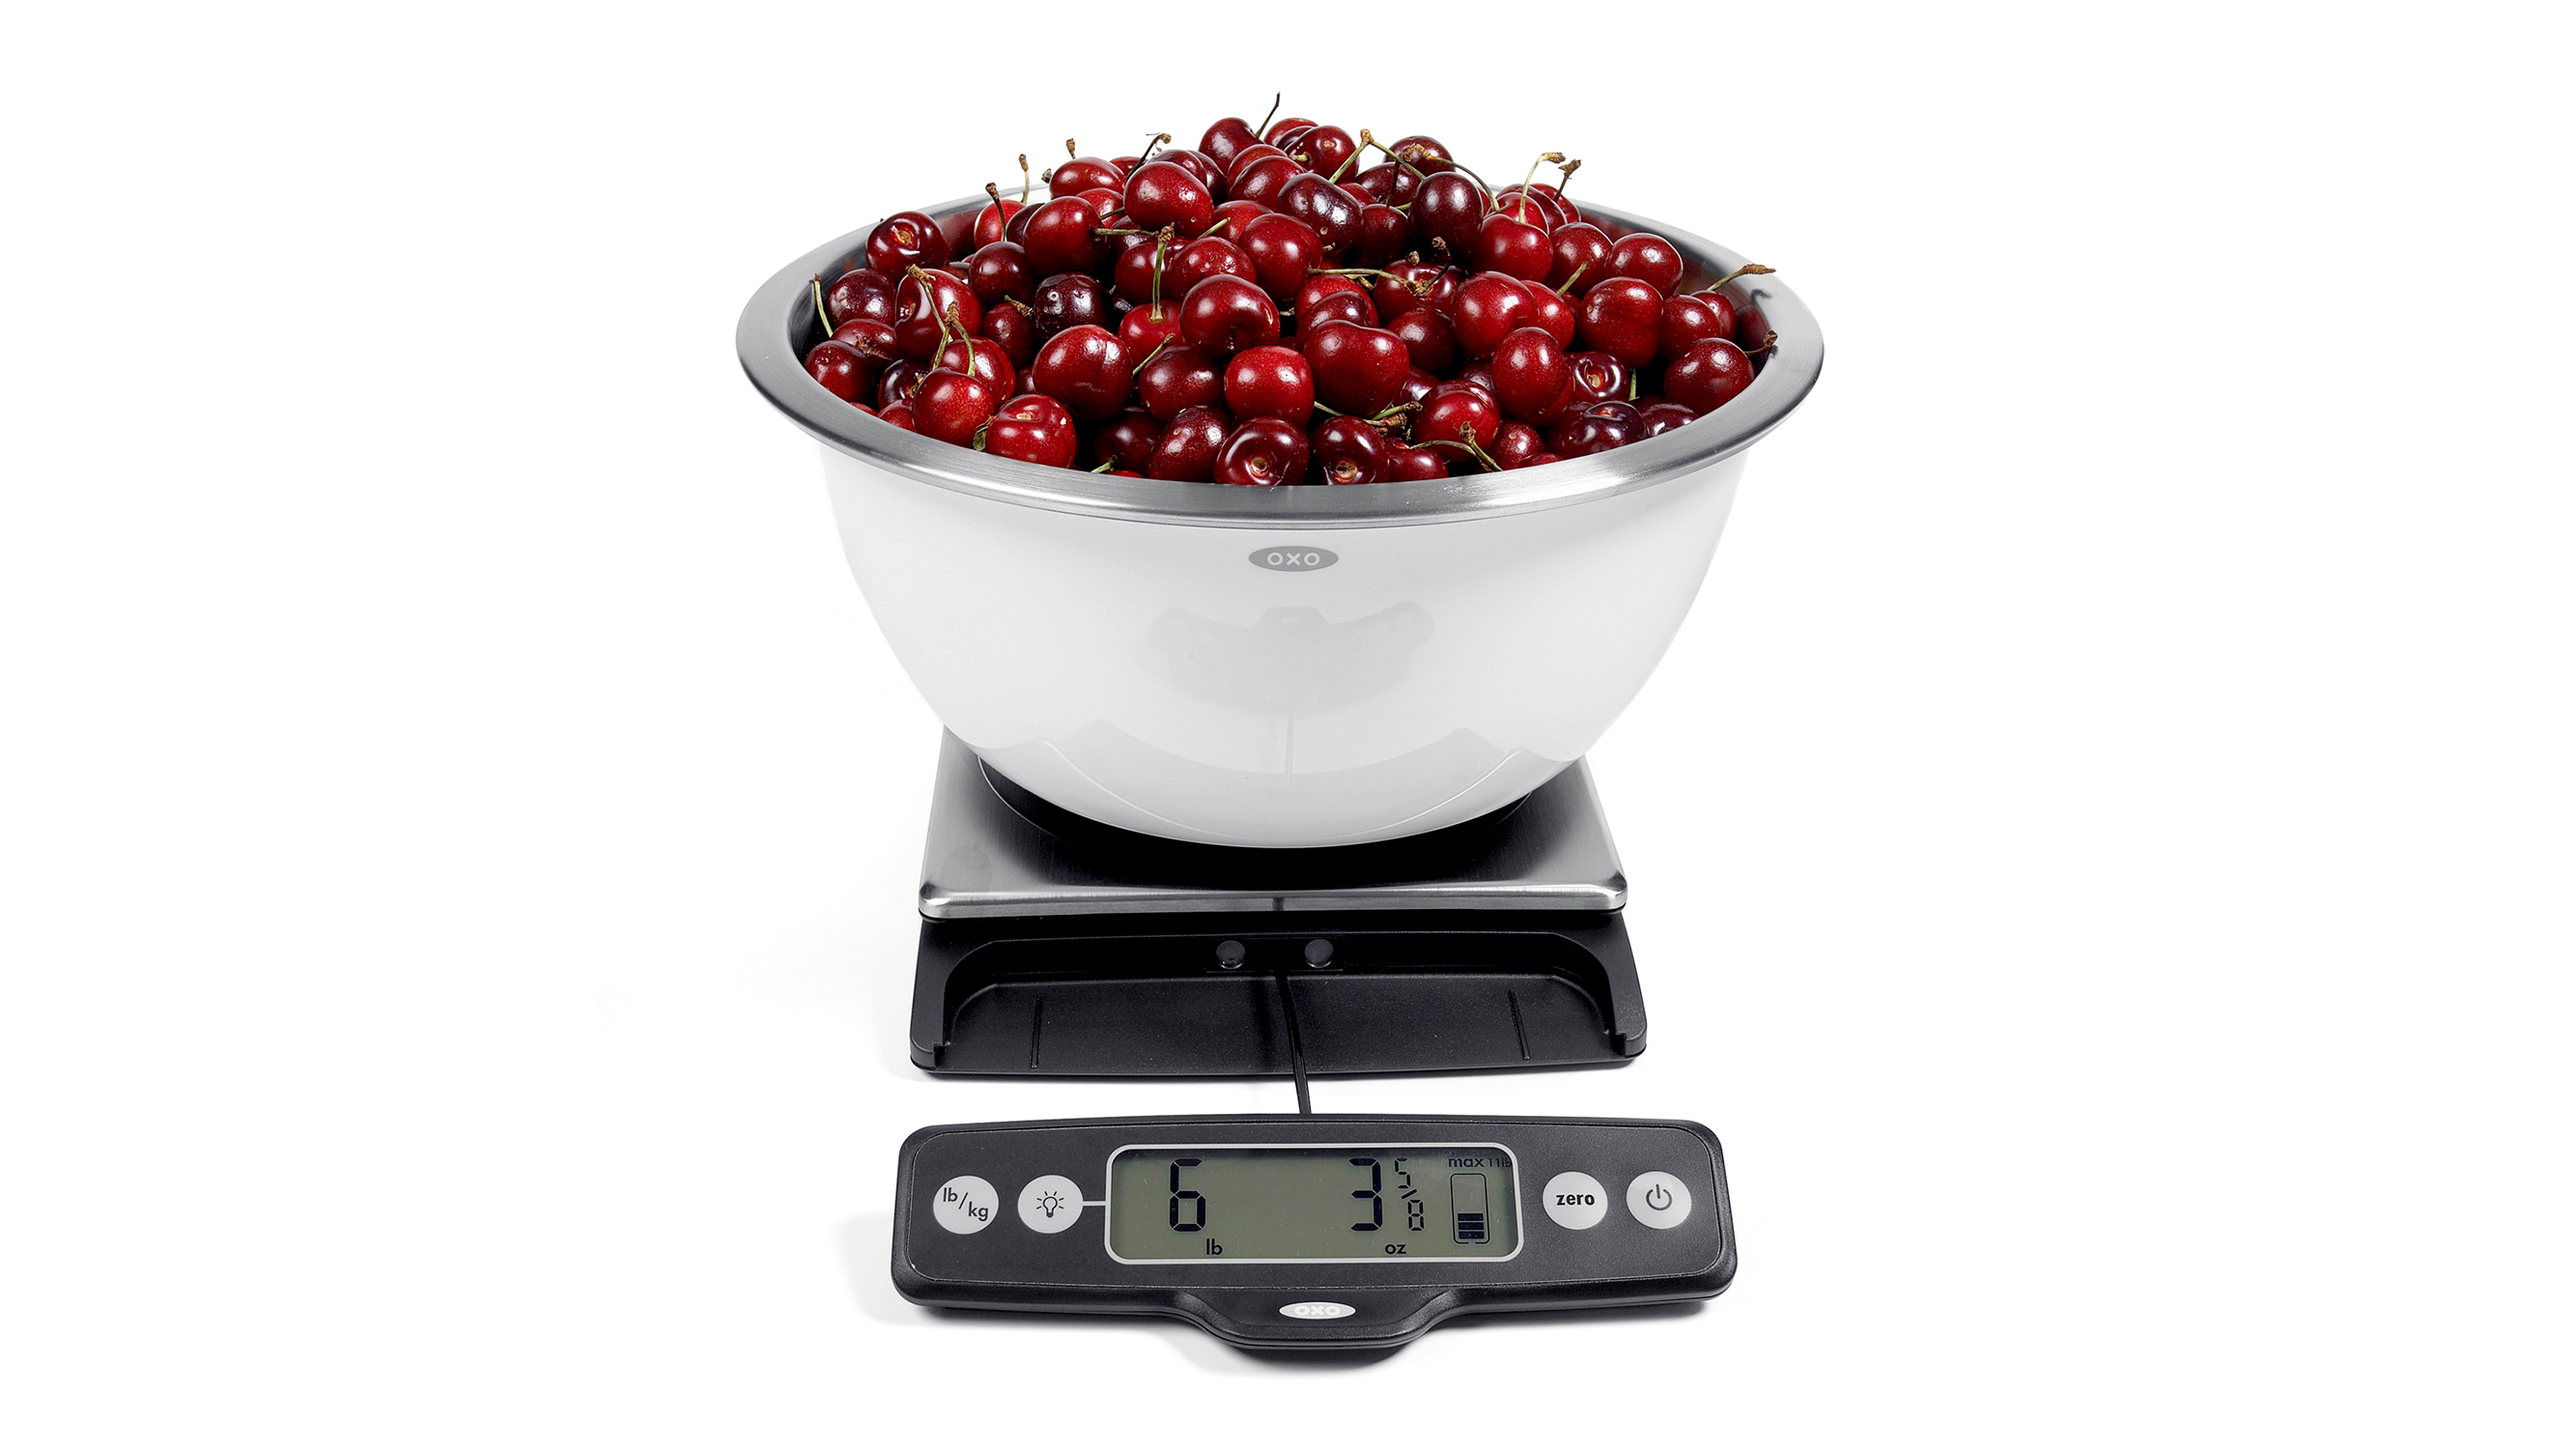 OXO Good Grips Digital Food Scale